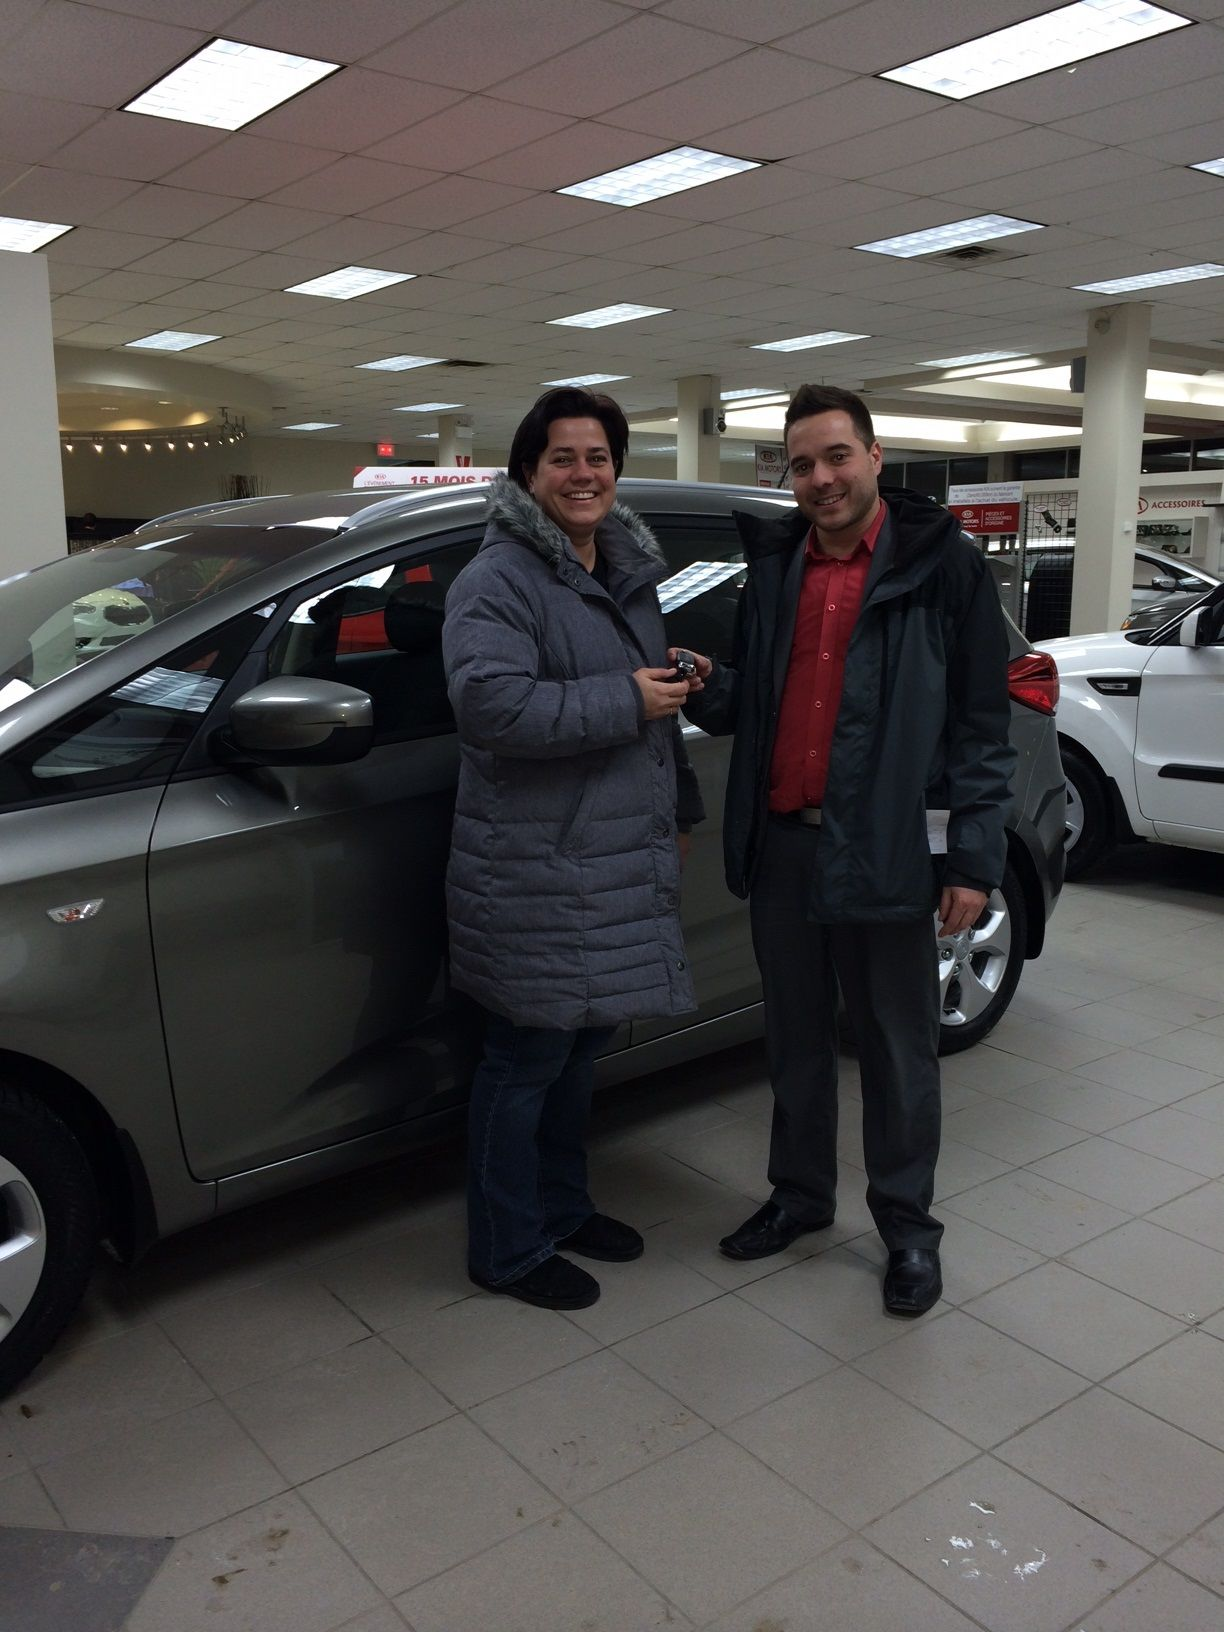 Excellent experience at Kia Sherbrooke!